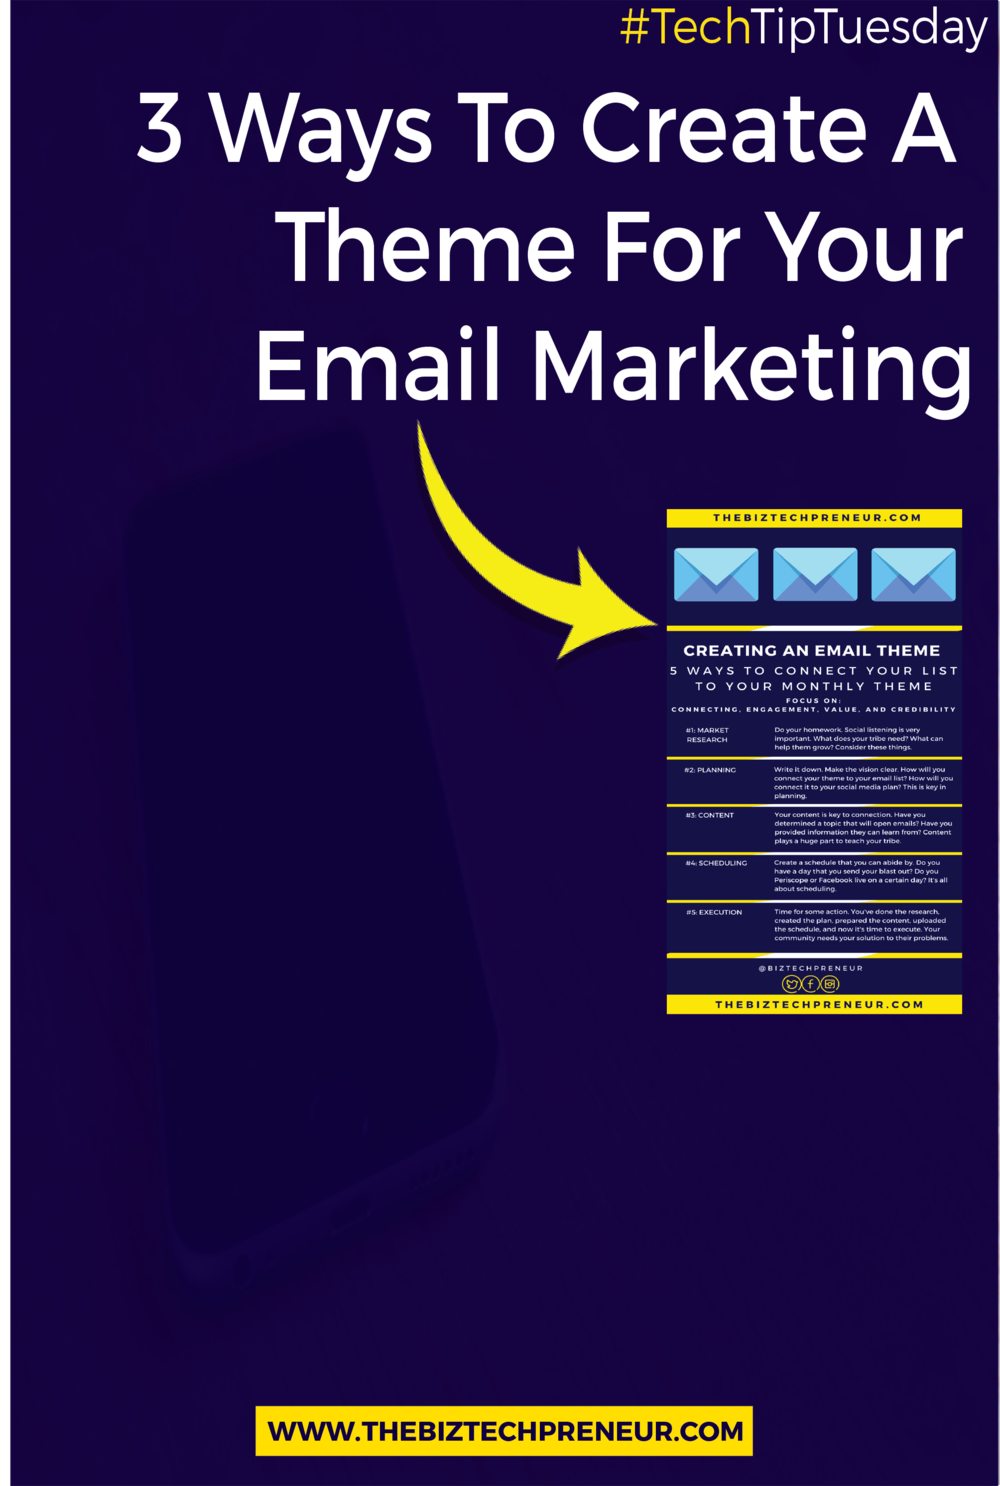 3 Ways To Create A Theme For Your Email Marketing